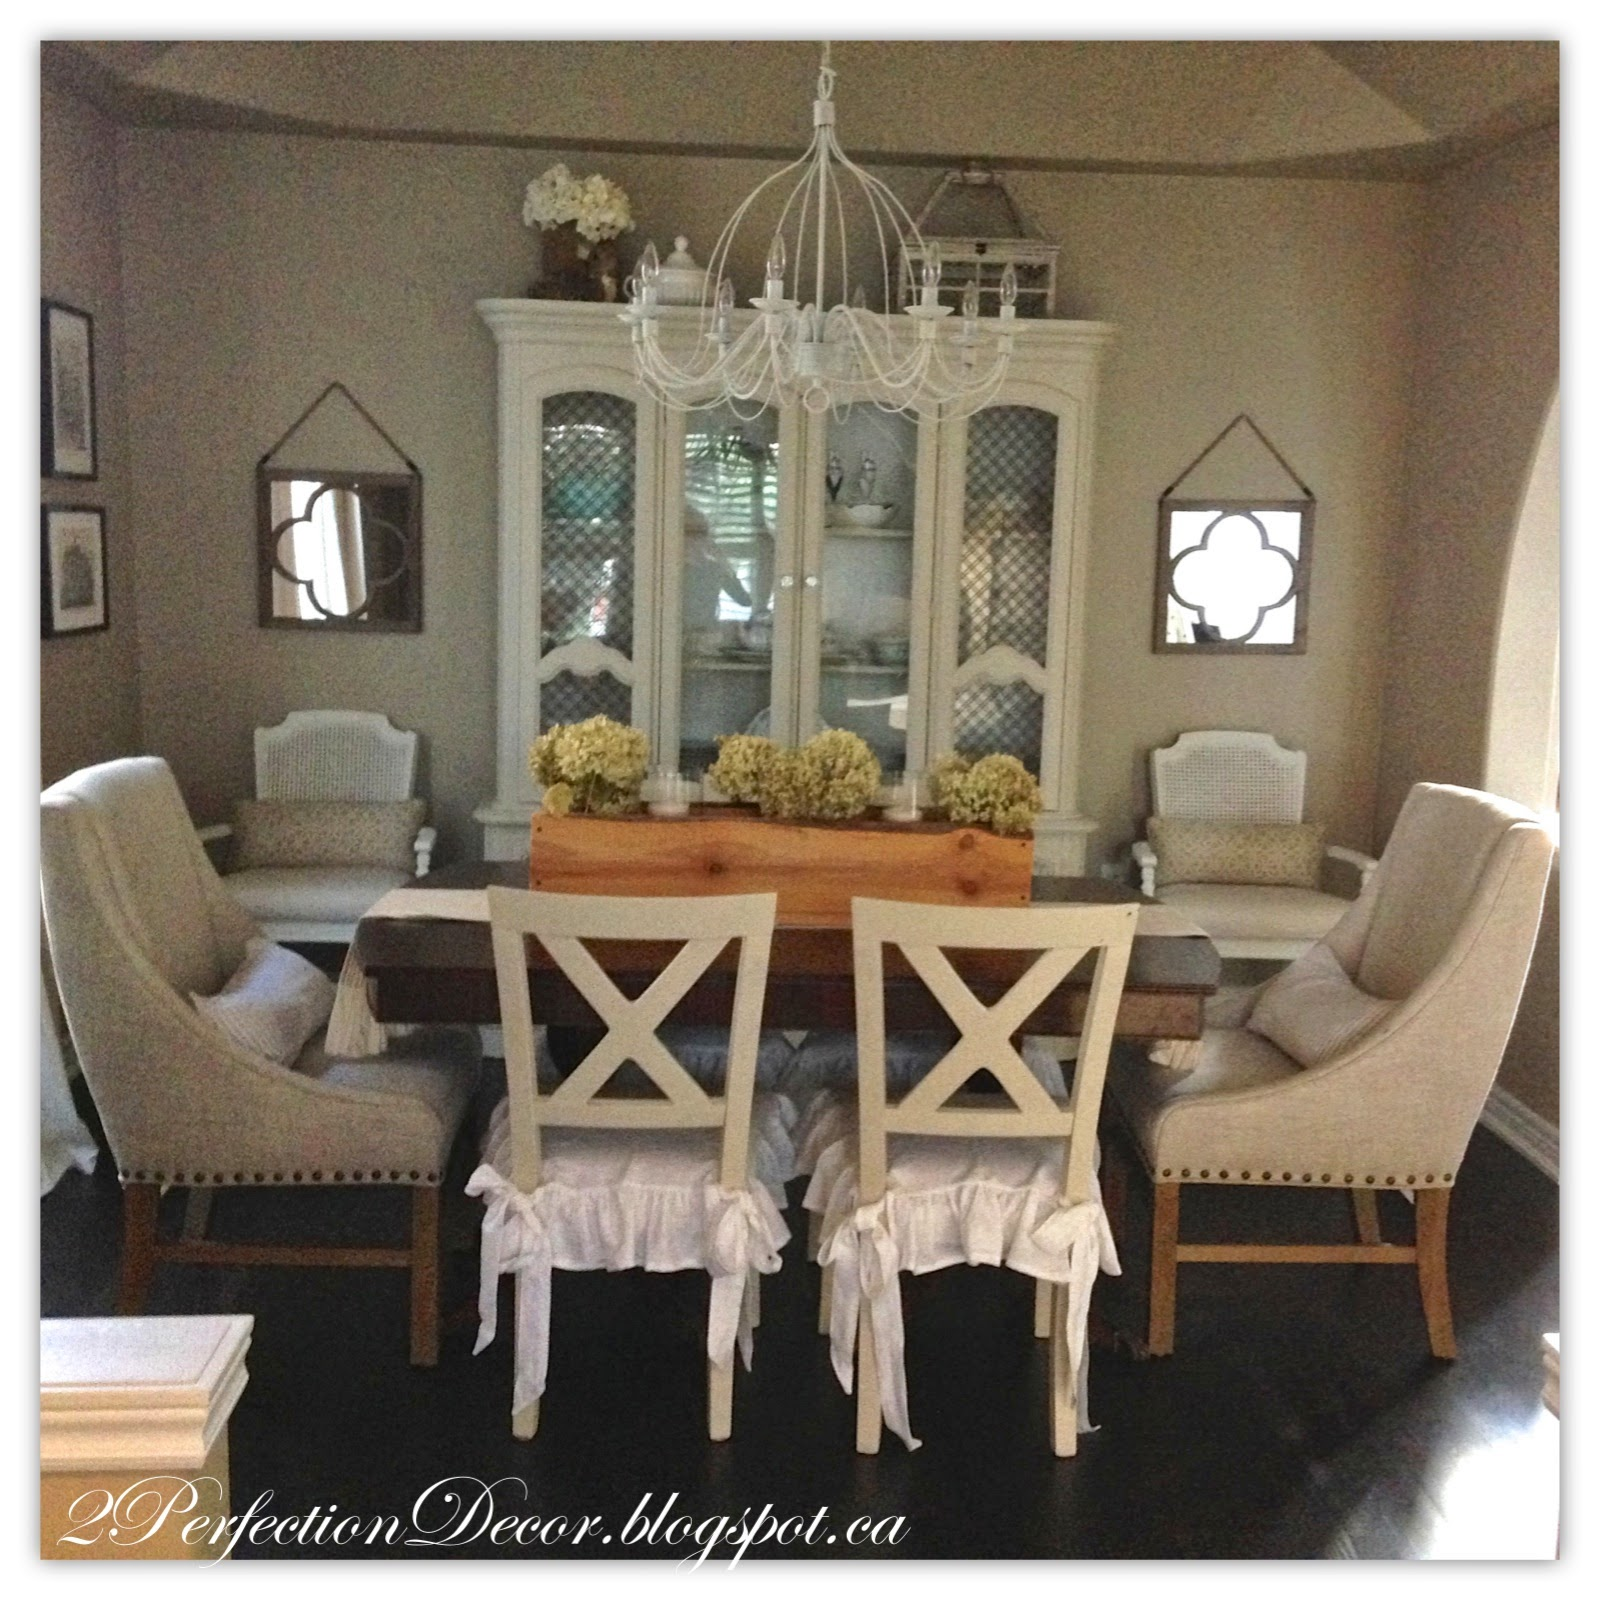 2Perfection Decor Our Dining Room Reveal